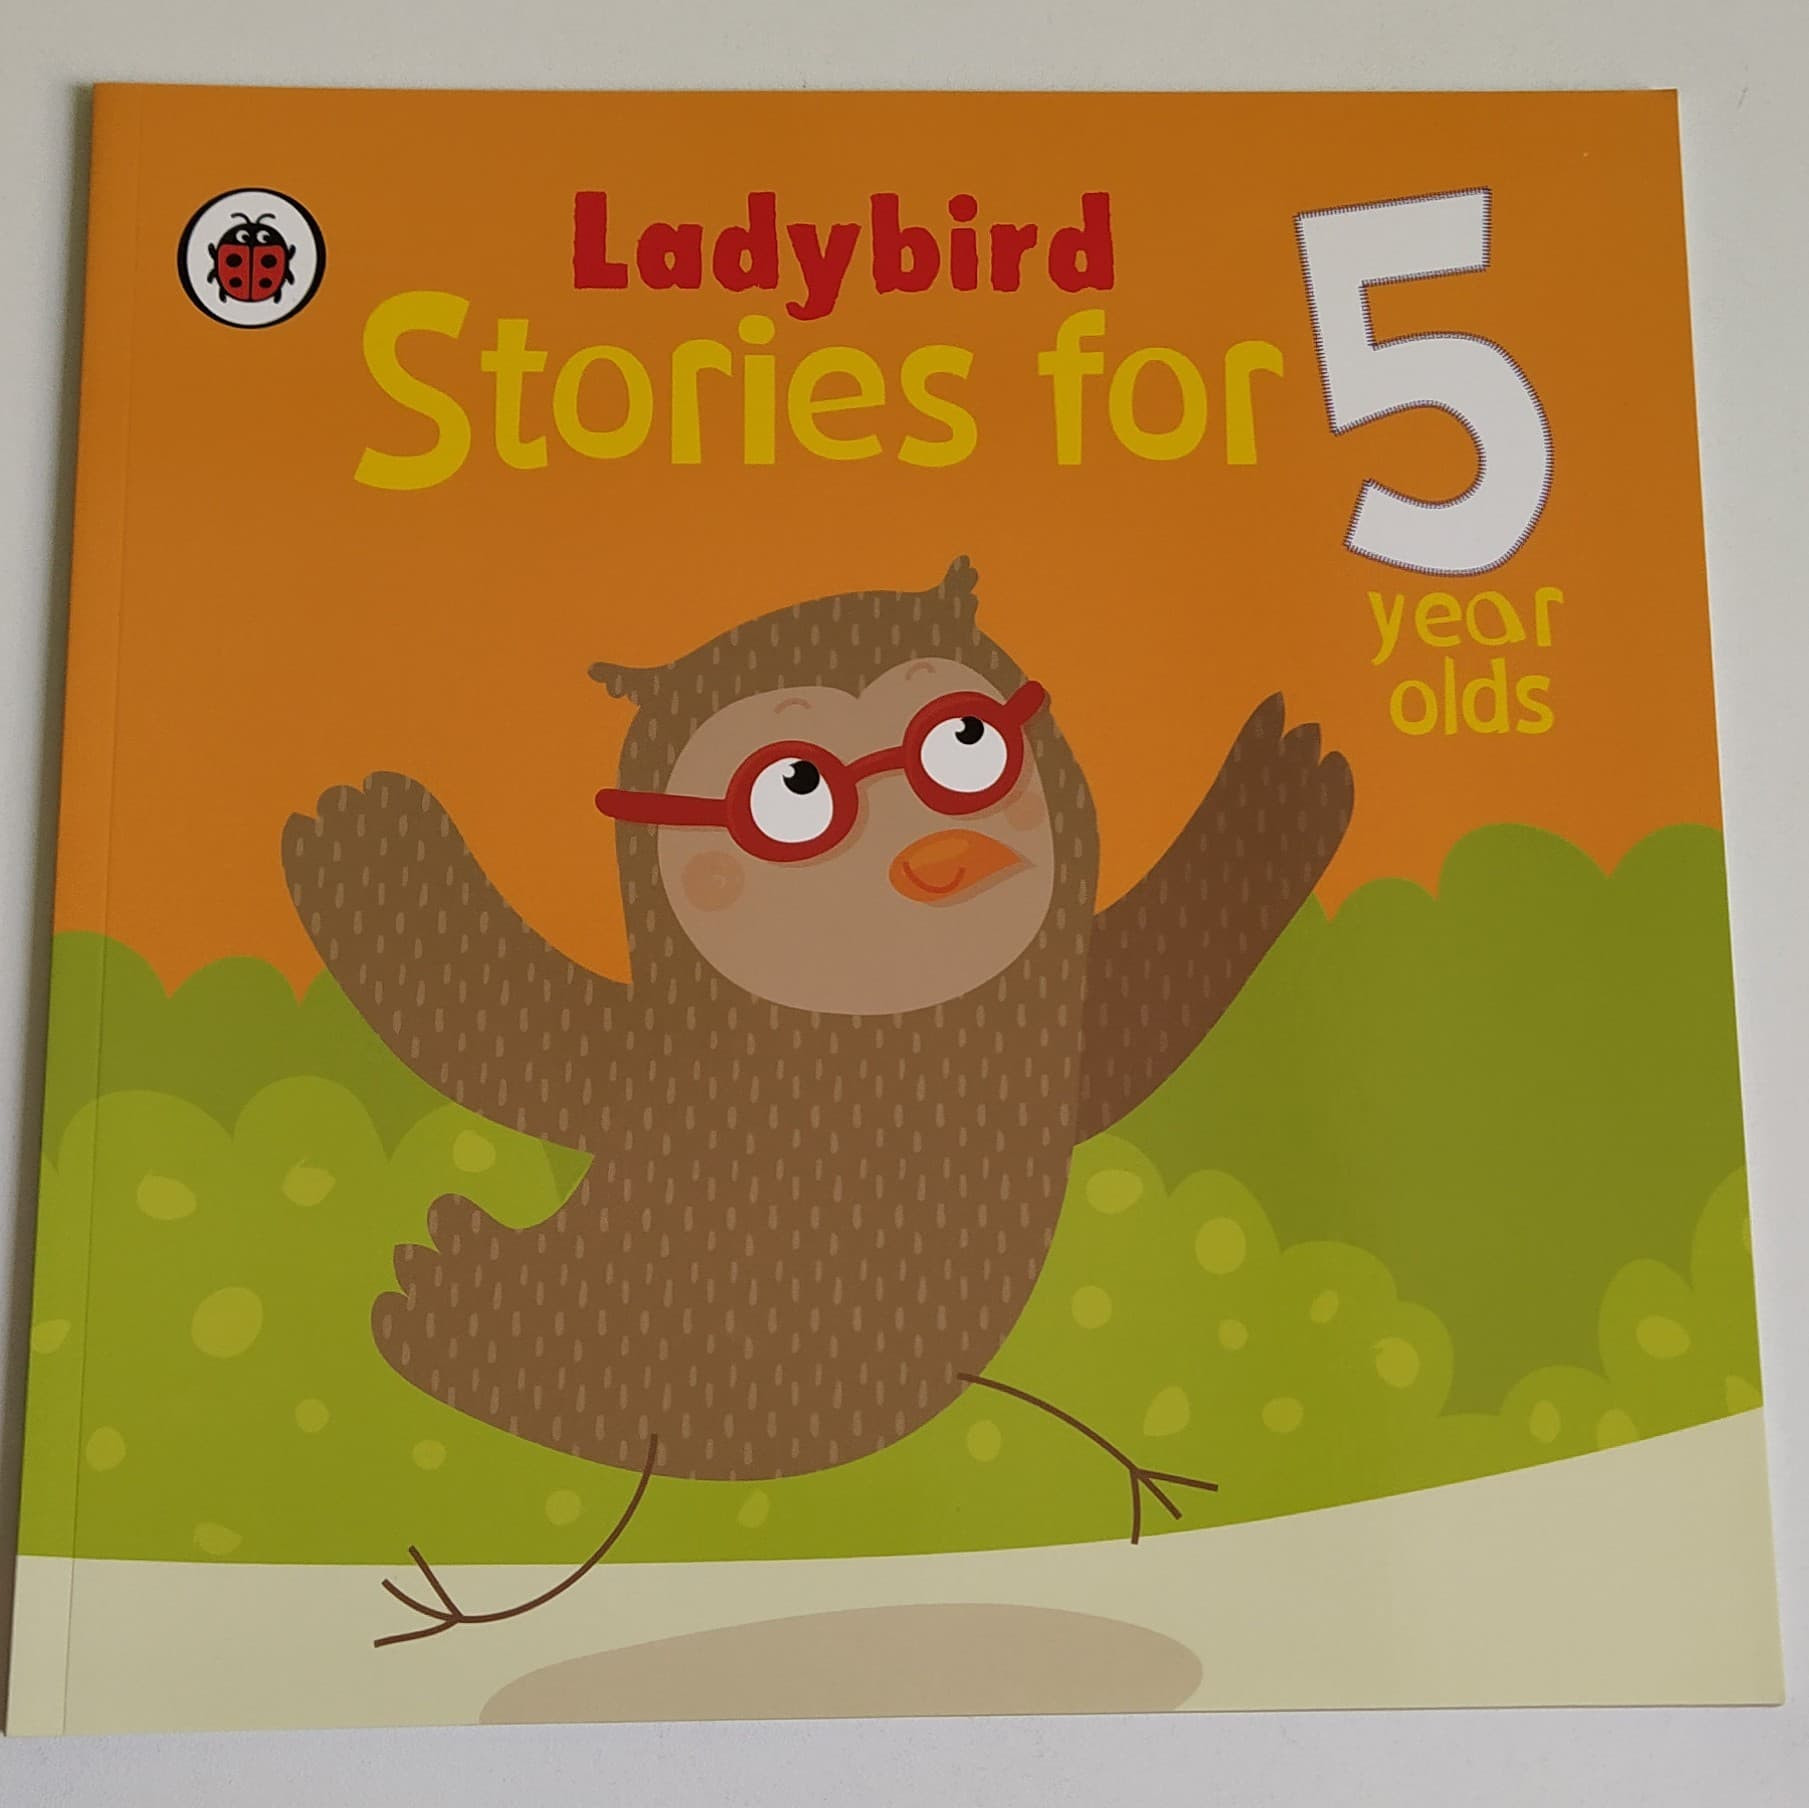 Ladybird Stories for 5 Year Old